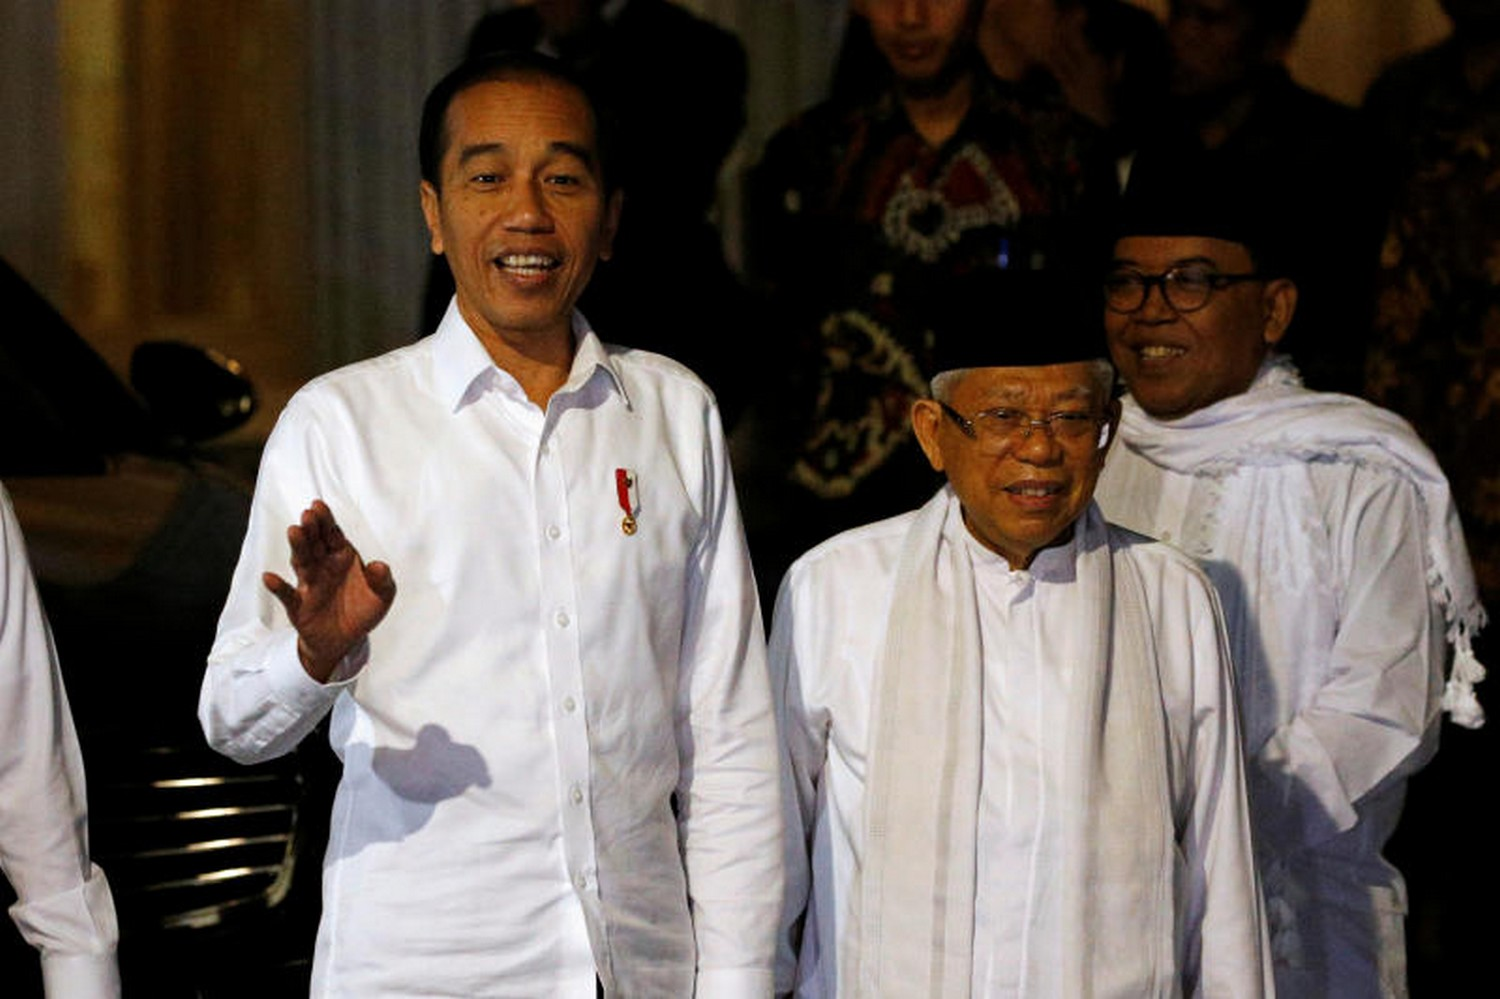 President Joko Widodo, left, who recently won a second term in office, said earlier Maknun could seek clemency from him if she did not find justice through a judicial review.